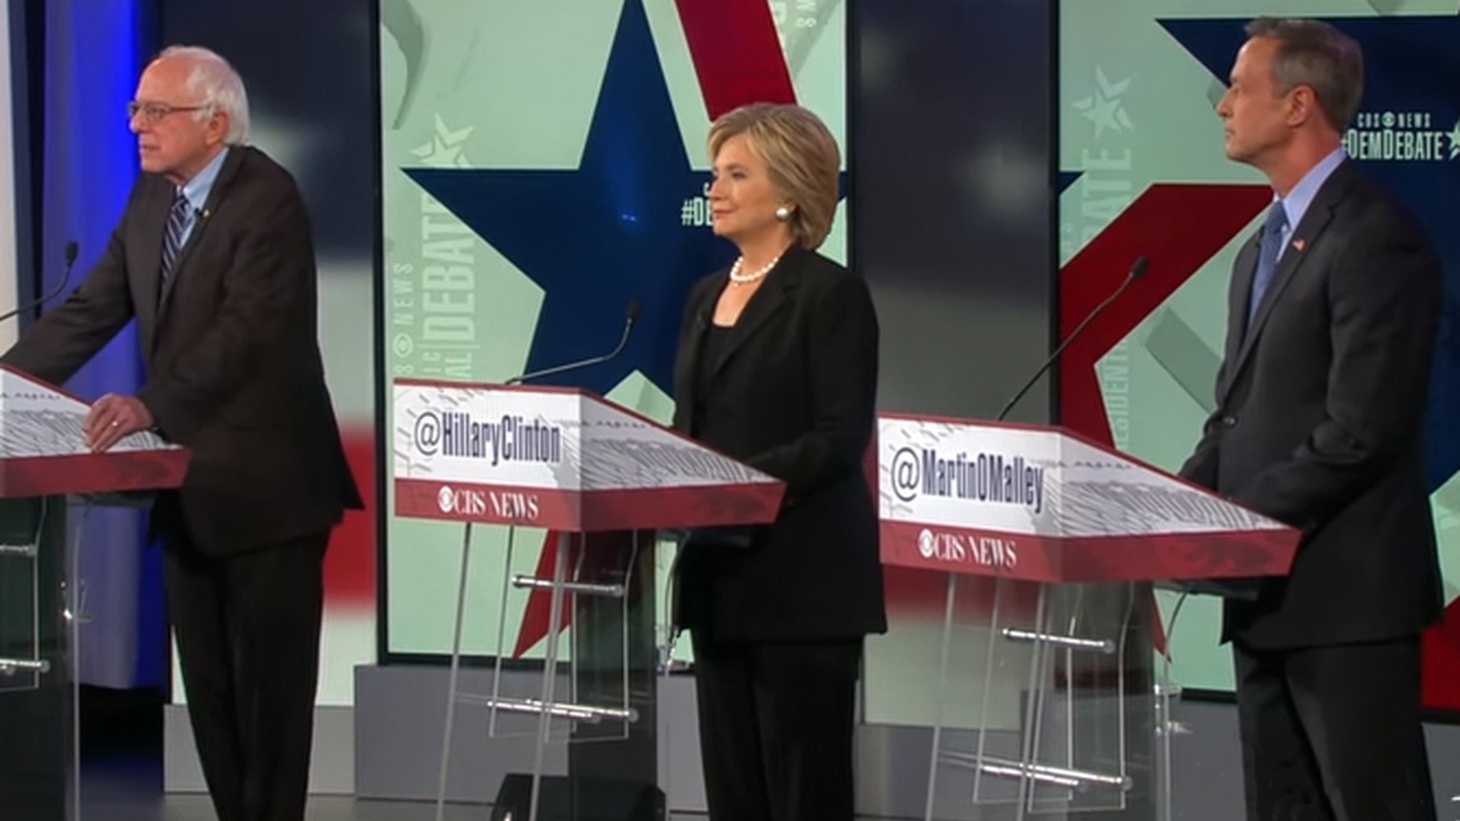 Candidates for the Democratic presidential nomination will be on stage in New Hampshire tomorrow night, just as a new dispute is breaking out in the party.